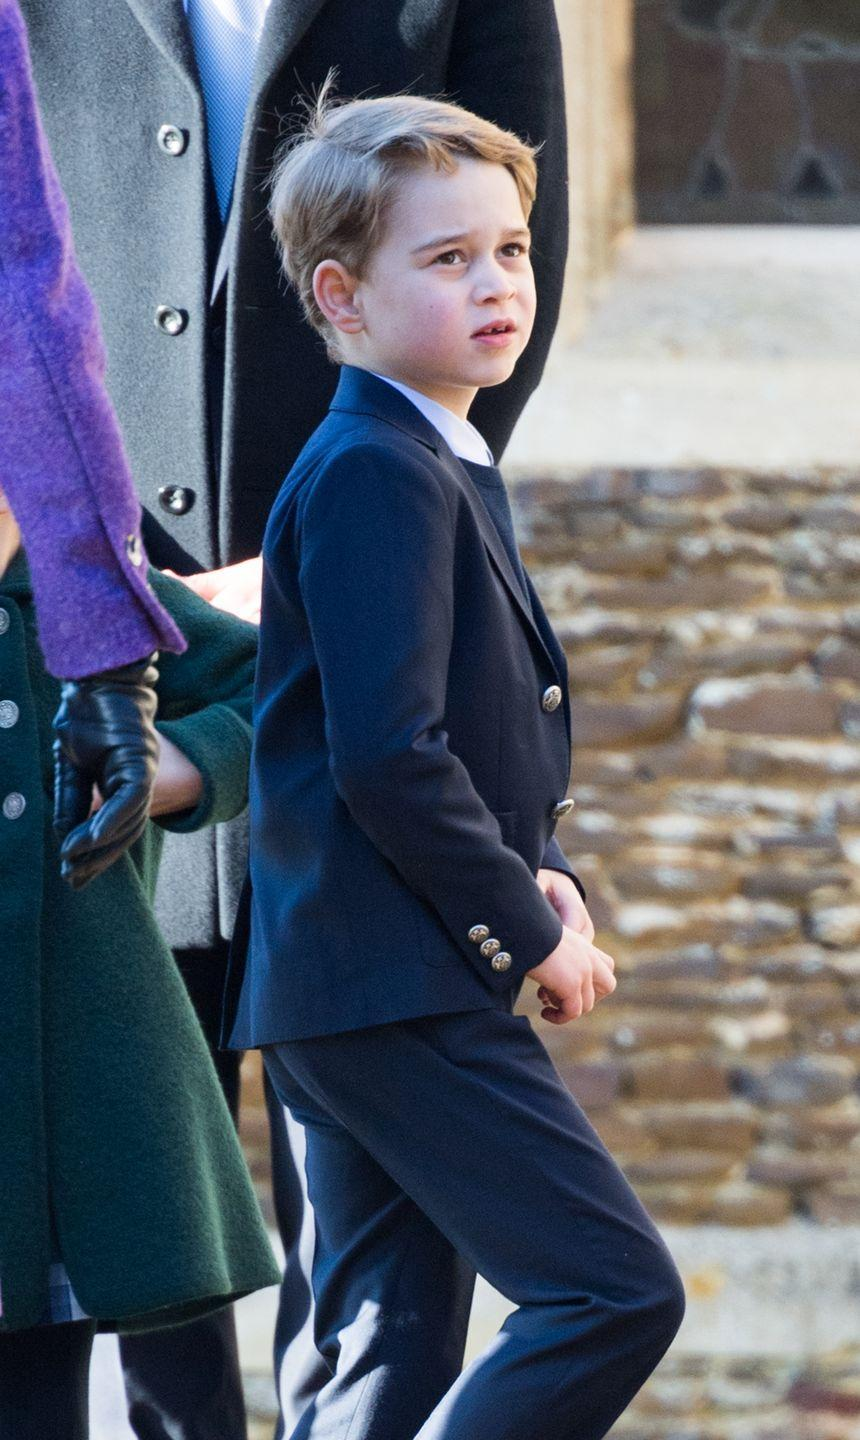 """<p>Like his father <em>and</em> grandfather before him, <a href=""""https://www.cosmopolitan.com/entertainment/celebs/a32361832/kate-middleton-prince-george-different-name/"""" rel=""""nofollow noopener"""" target=""""_blank"""" data-ylk=""""slk:Prince George"""" class=""""link rapid-noclick-resp"""">Prince George</a> was (yep!) also born to be king. When he takes the throne, he'll be King George VII—and hopefully continue his tradition of meeting important politicians and world leaders <a href=""""https://www.cosmopolitan.com/entertainment/celebs/news/a57352/prince-george-met-president-obama/"""" rel=""""nofollow noopener"""" target=""""_blank"""" data-ylk=""""slk:in his bathrobe"""" class=""""link rapid-noclick-resp"""">in his bathrobe</a> like he did when he met former President Barack Obama. Because you do you, George!</p>"""